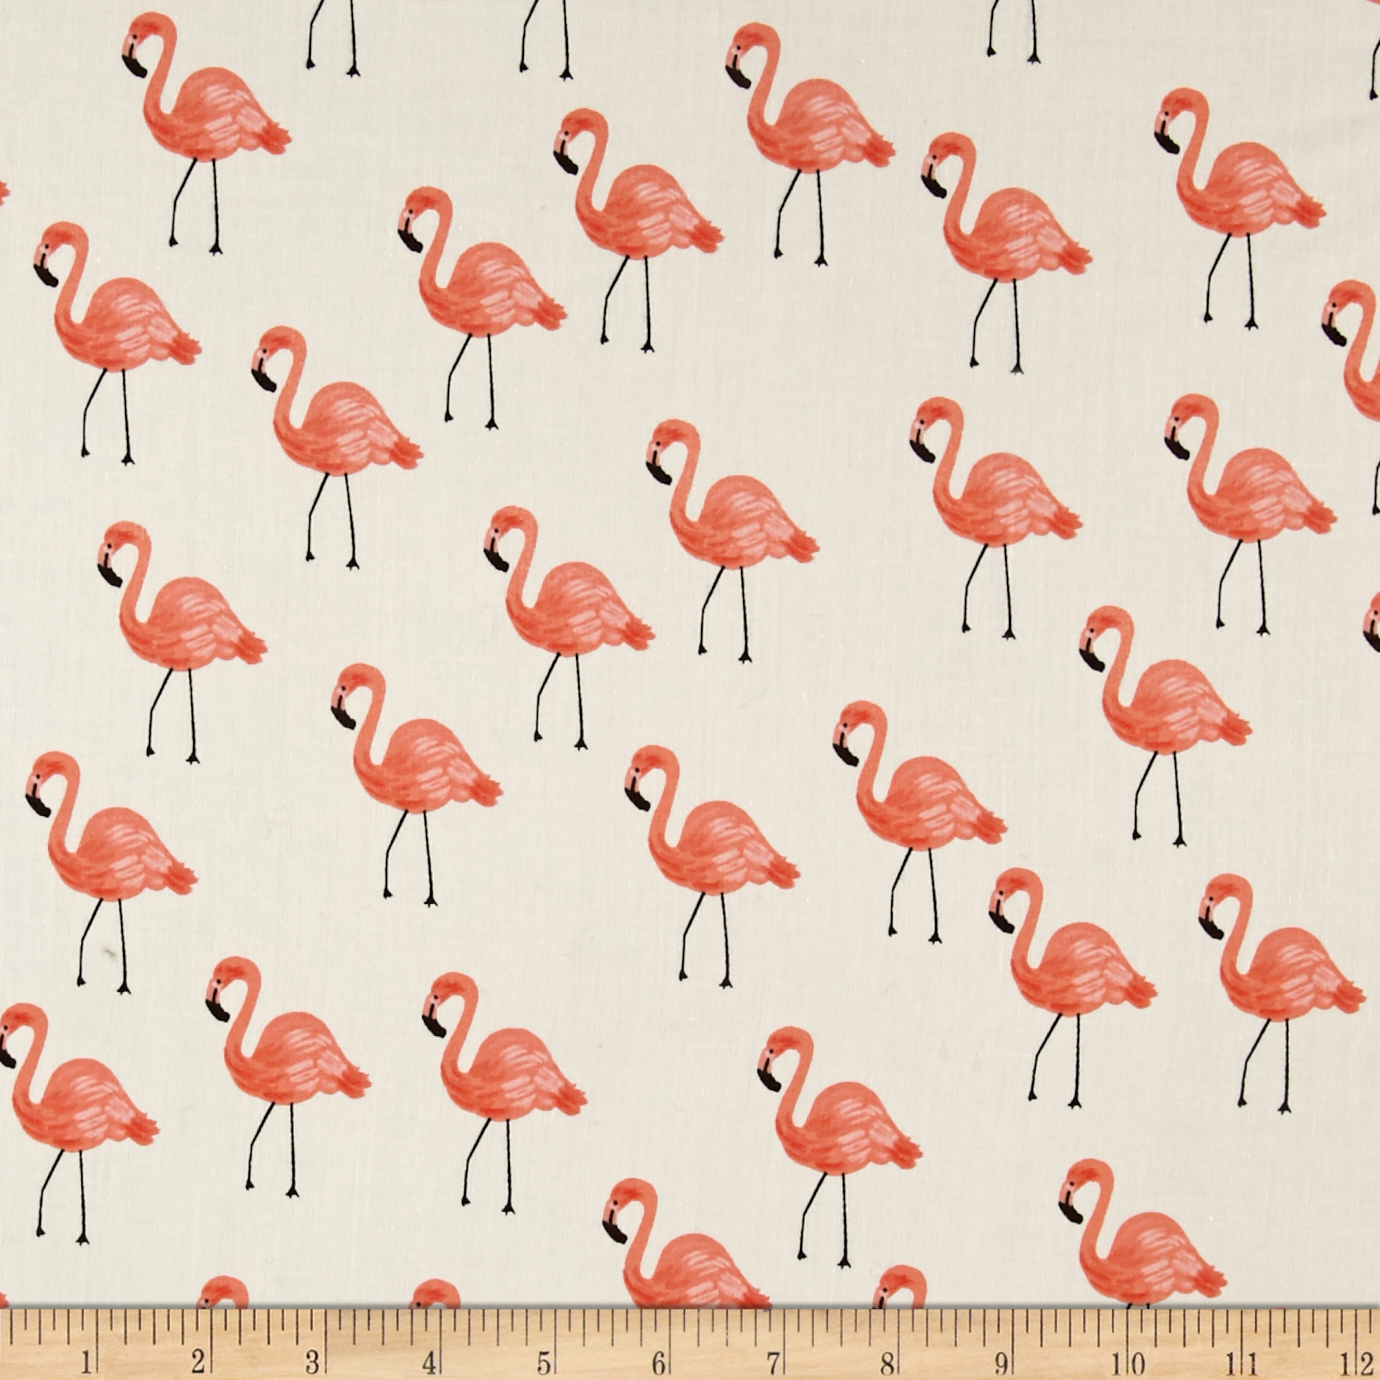 Cotton + Steel Rifle Paper Co. Les Fleurs Lawn Flamingoes Ivory Fabric by Cotton & Steel in USA